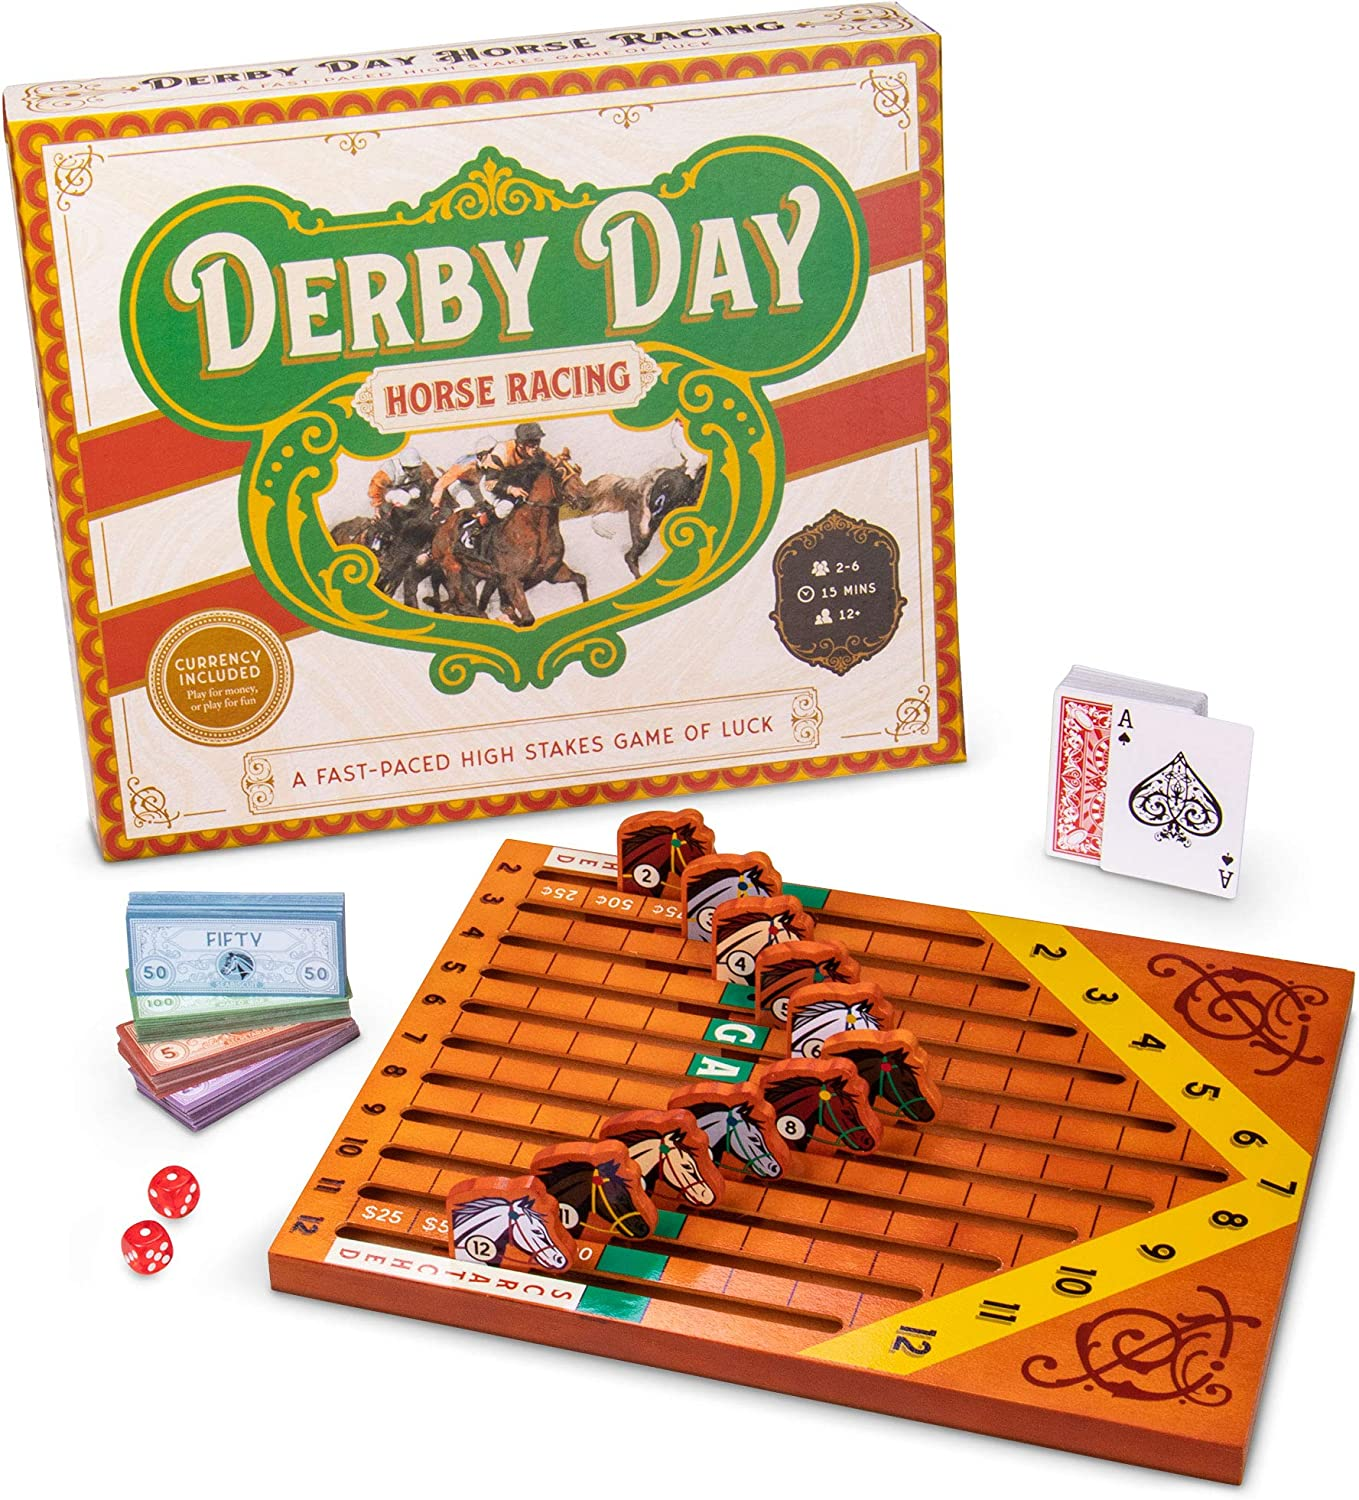 horse racing group betting games